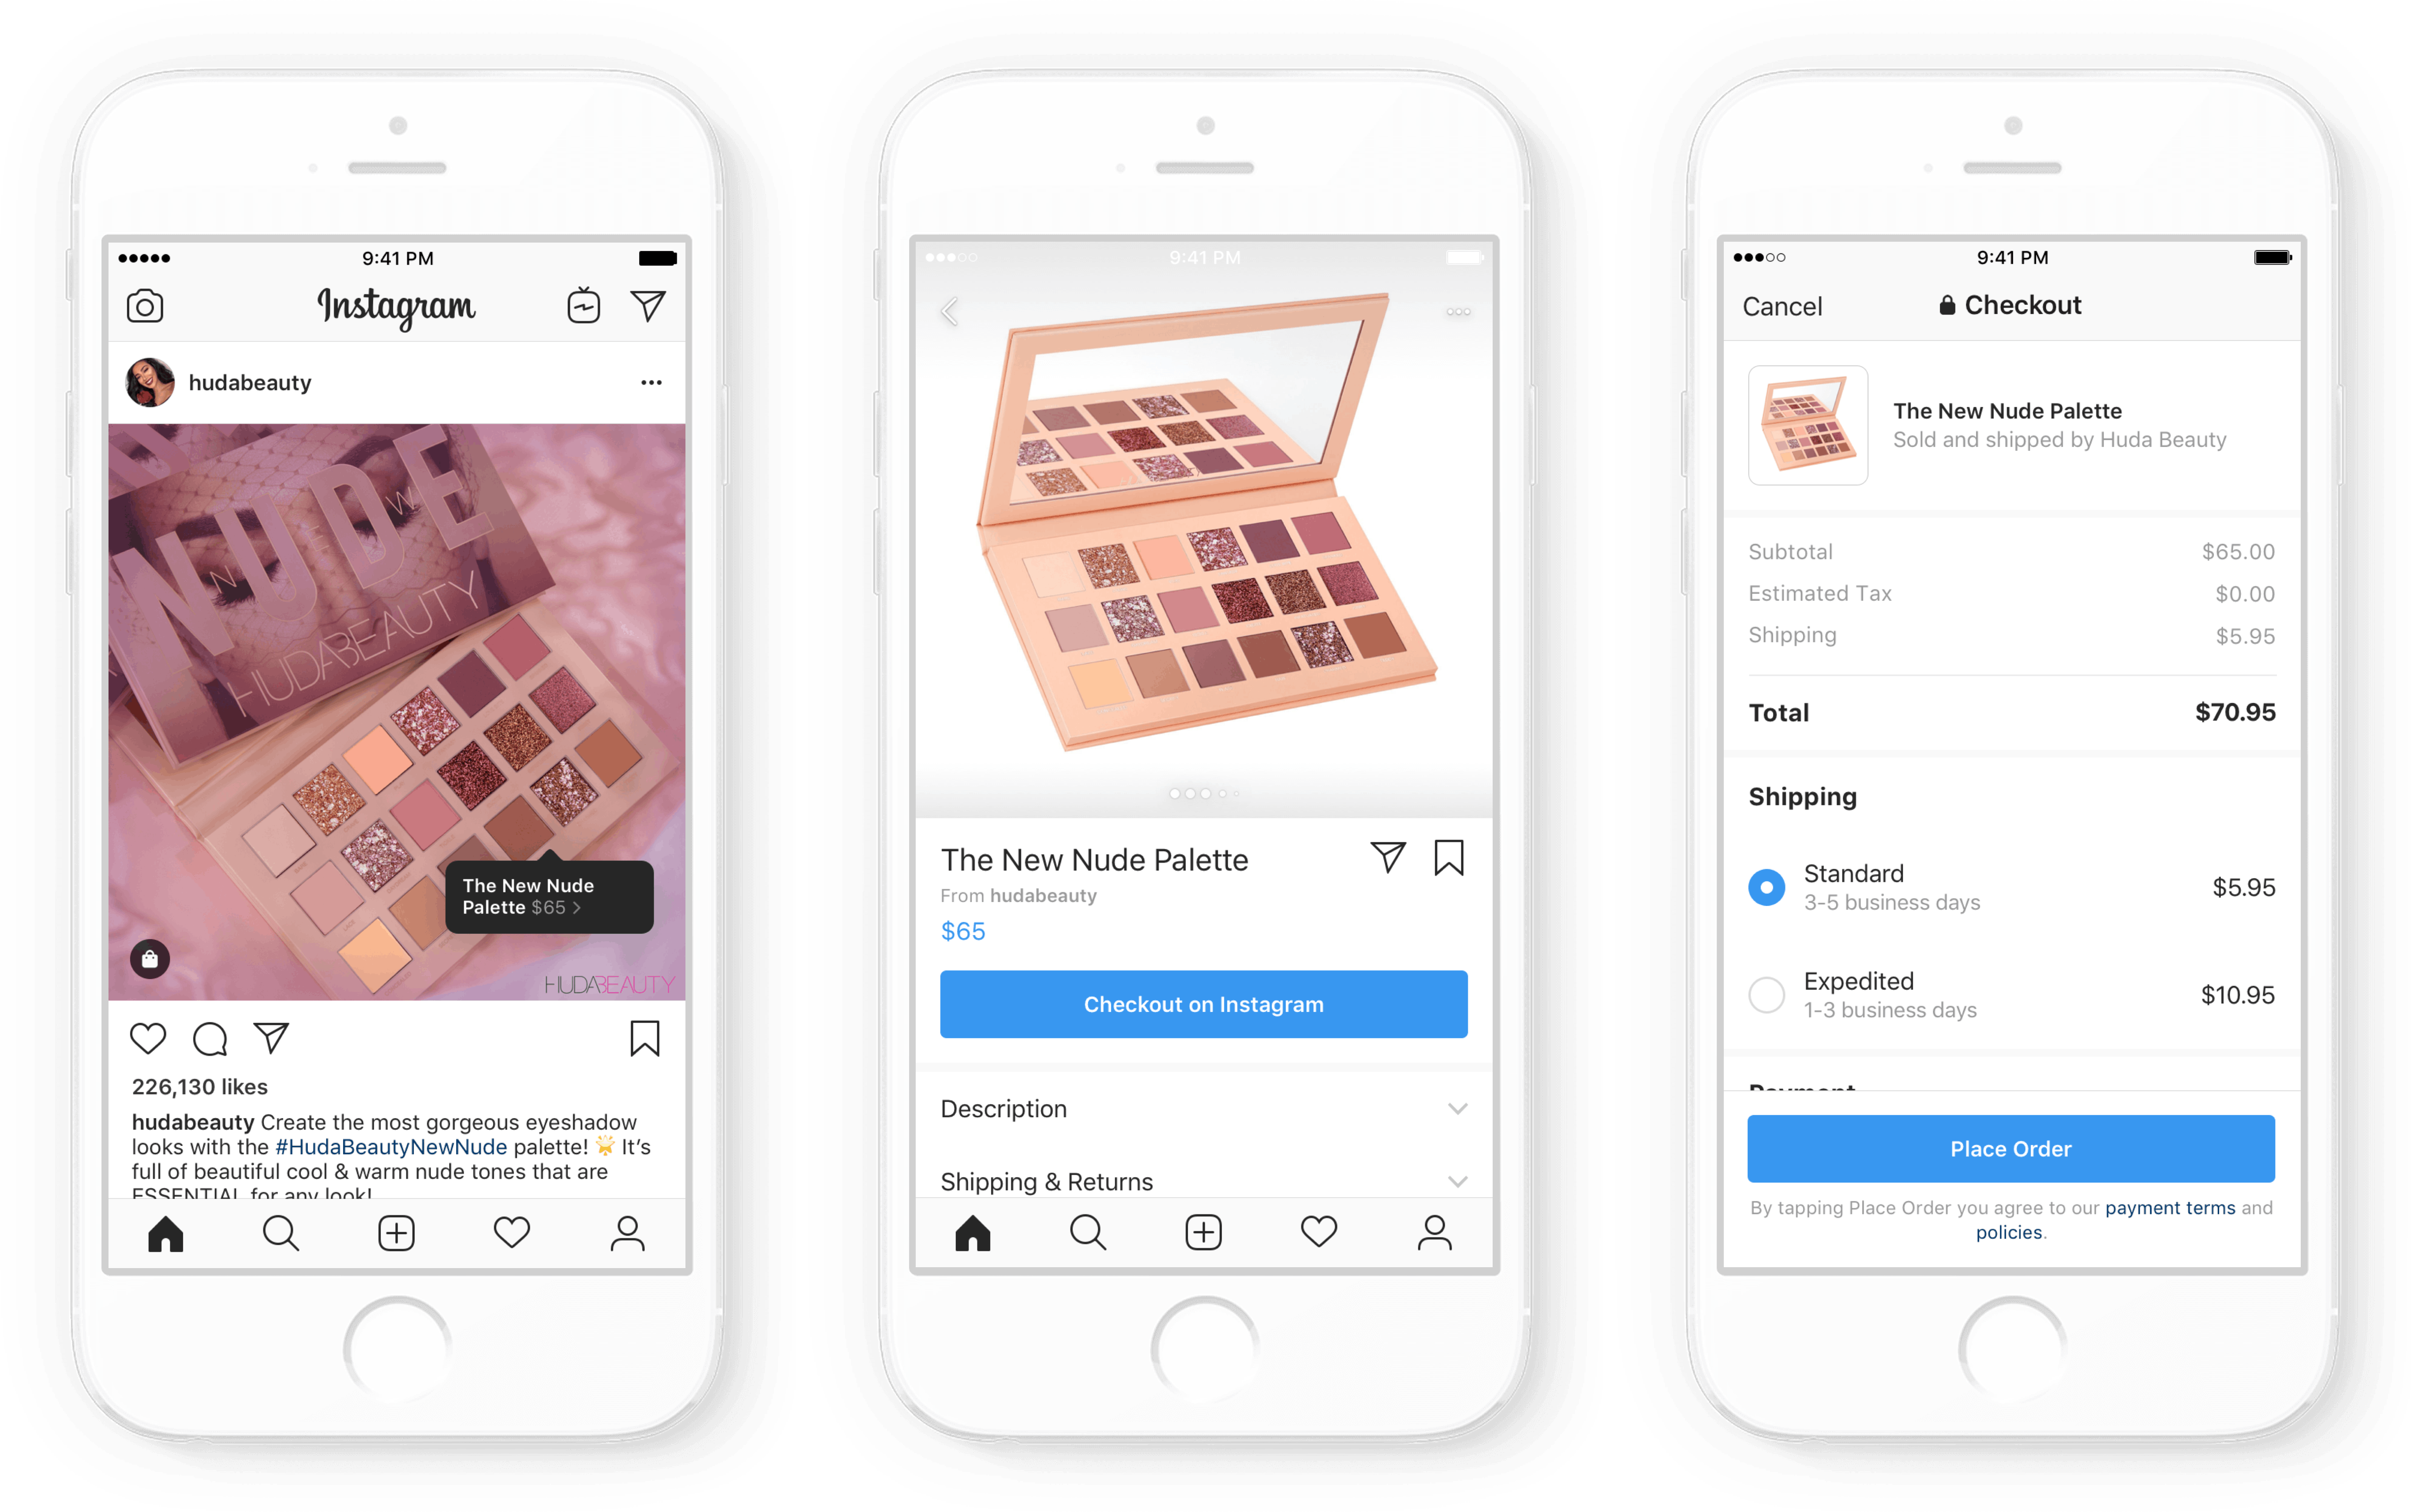 The Week Ahead: Instagram's Checkout Feature Is Already Changing How We Shop Online